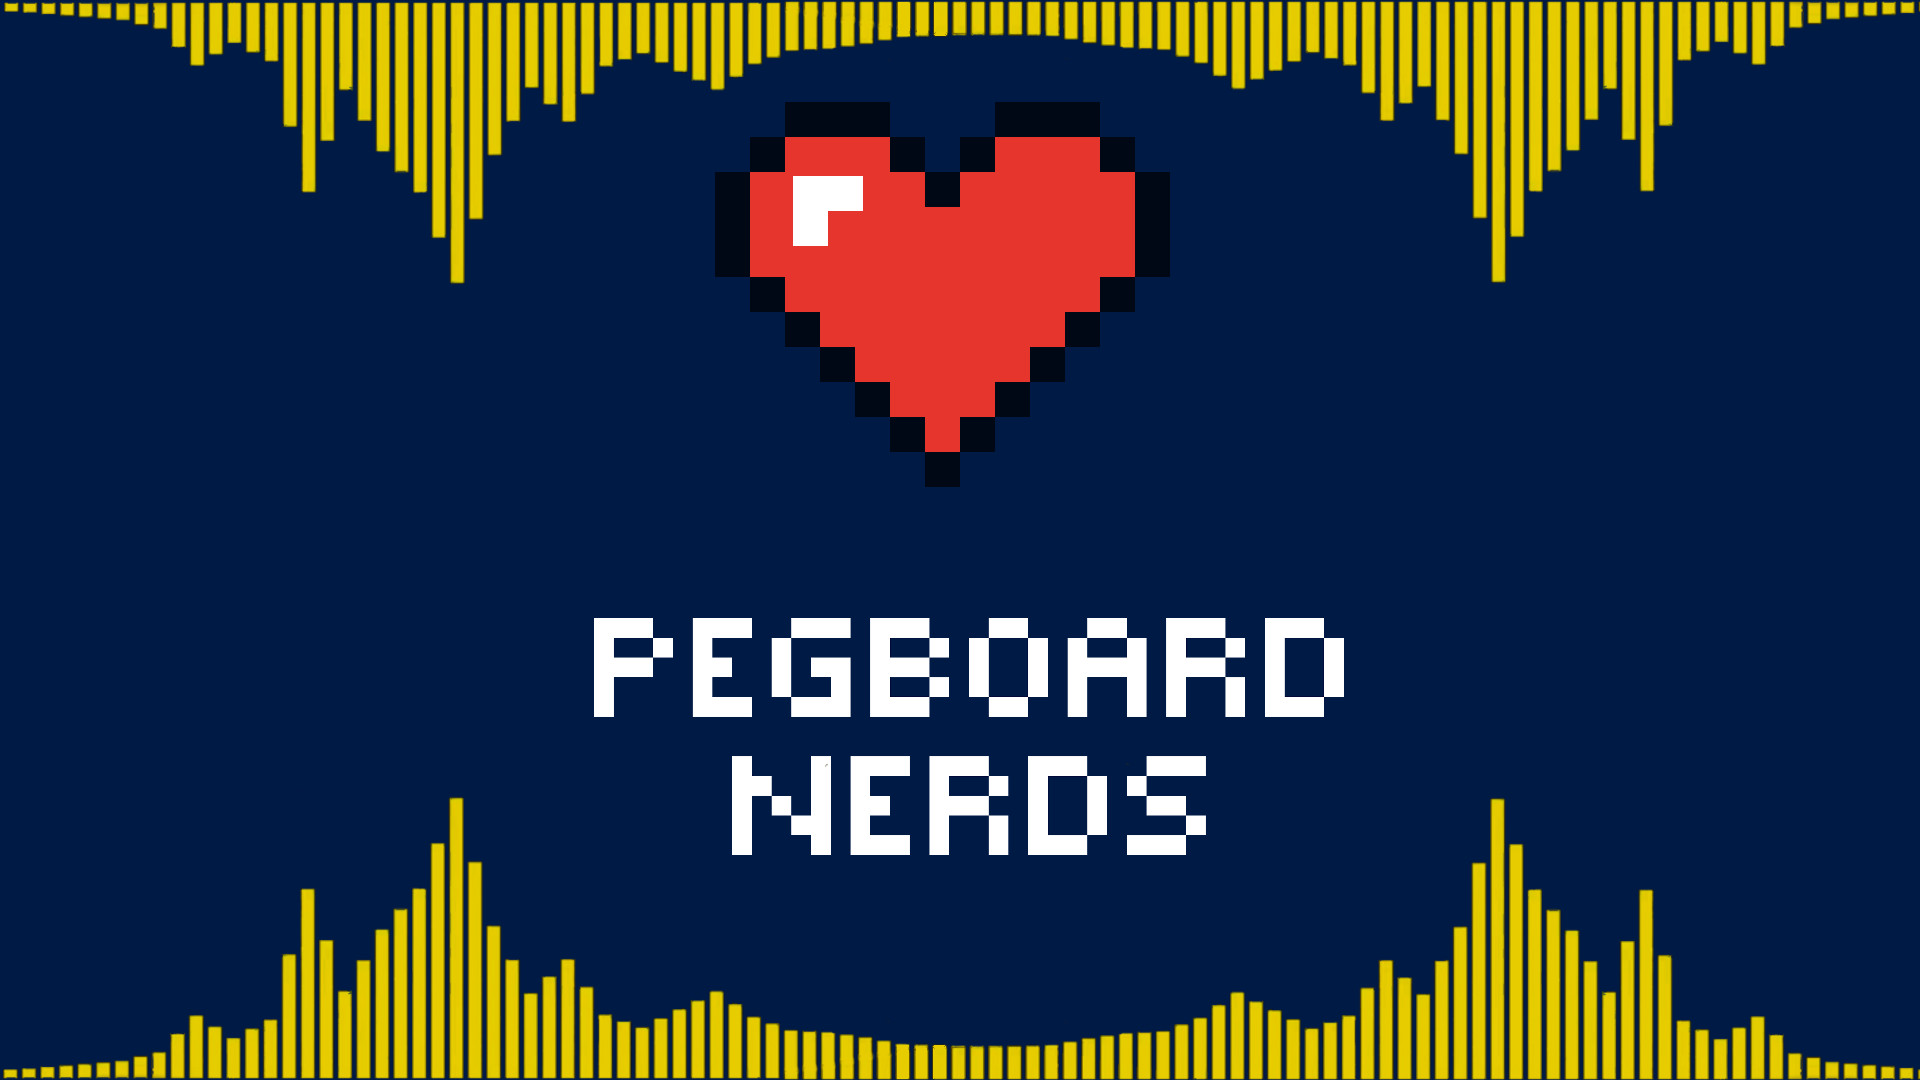 1920x1080 Pegboard Nerds Wallpapers | Top 56 Pegboard Nerds Wallpapers